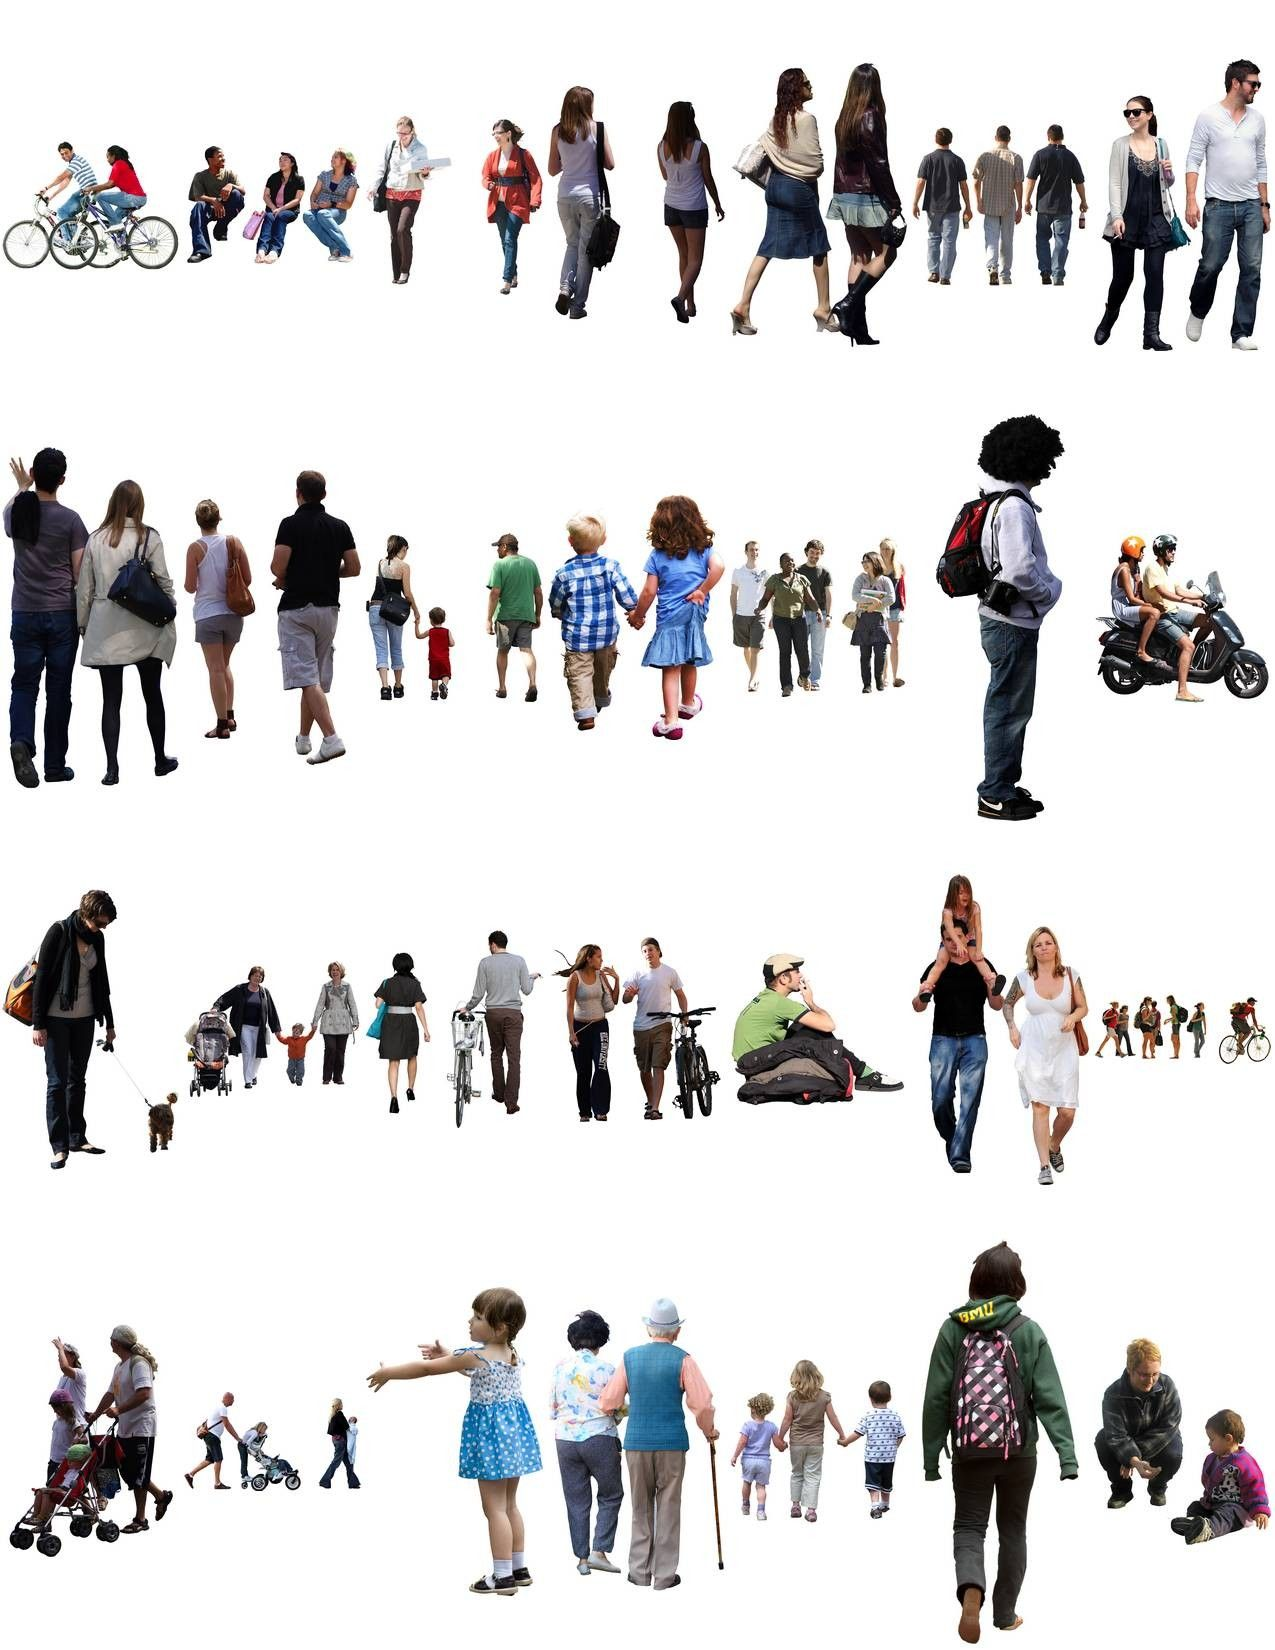 Texture png people 2d cutout | Auto Body aesthetics | Pinterest | 2d for Crowd Of People Top View Png  56mzq